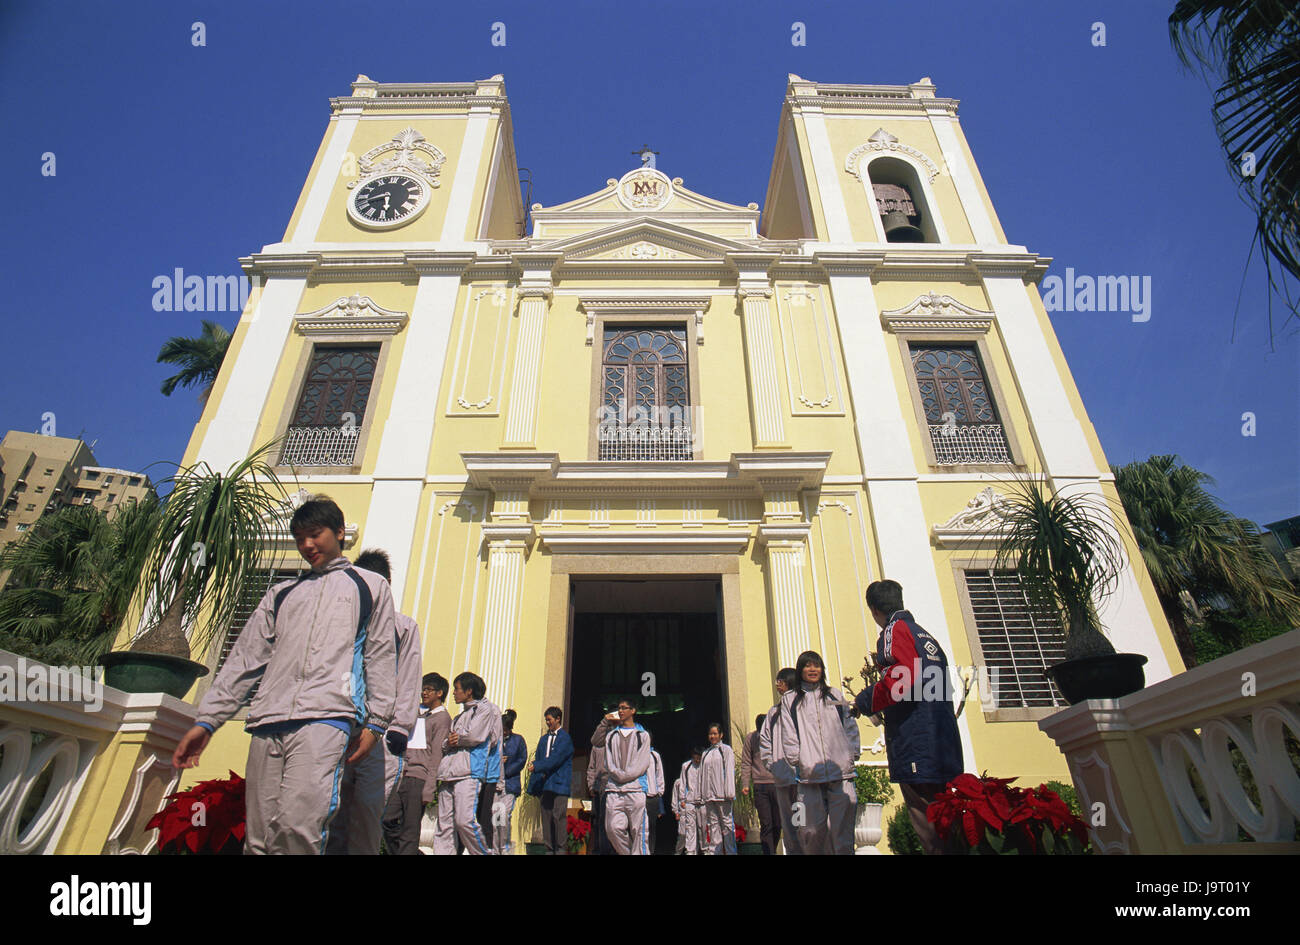 China,Macau,church piece Lawrence,believers,Asia,Eastern Asia,peninsula,town,building,architecture,outside,facade,steeples,church,sacred - Stock Image